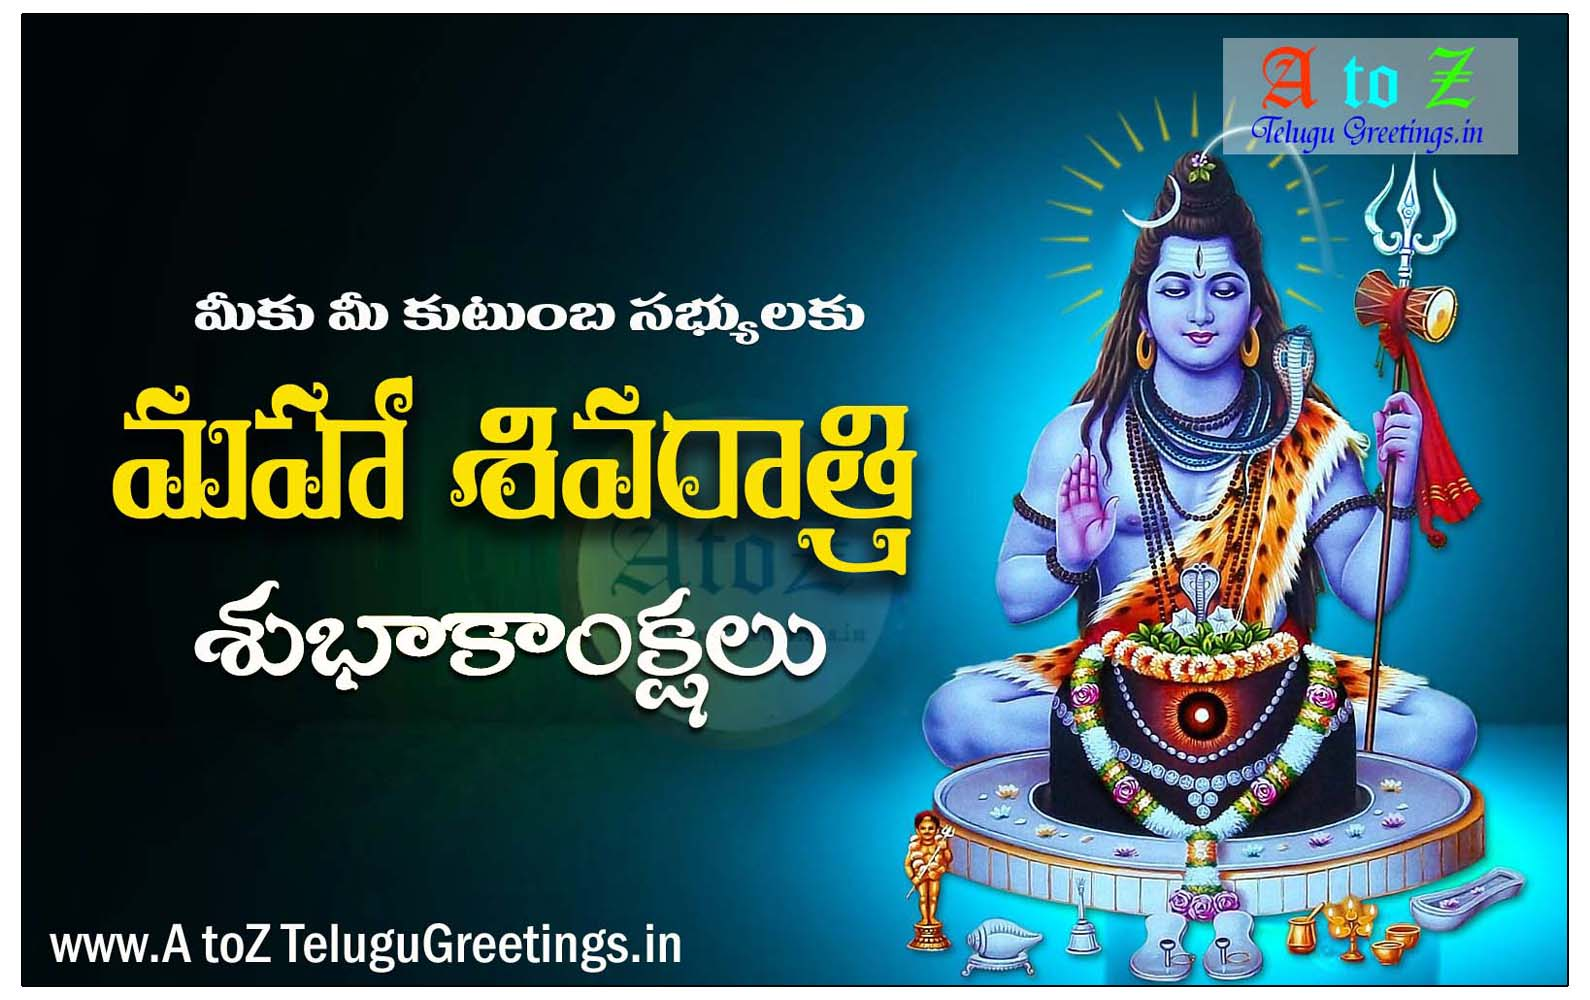 Maha shivaratri wishes greetings lord shiva blessing wallpapers pictures m4hsunfo